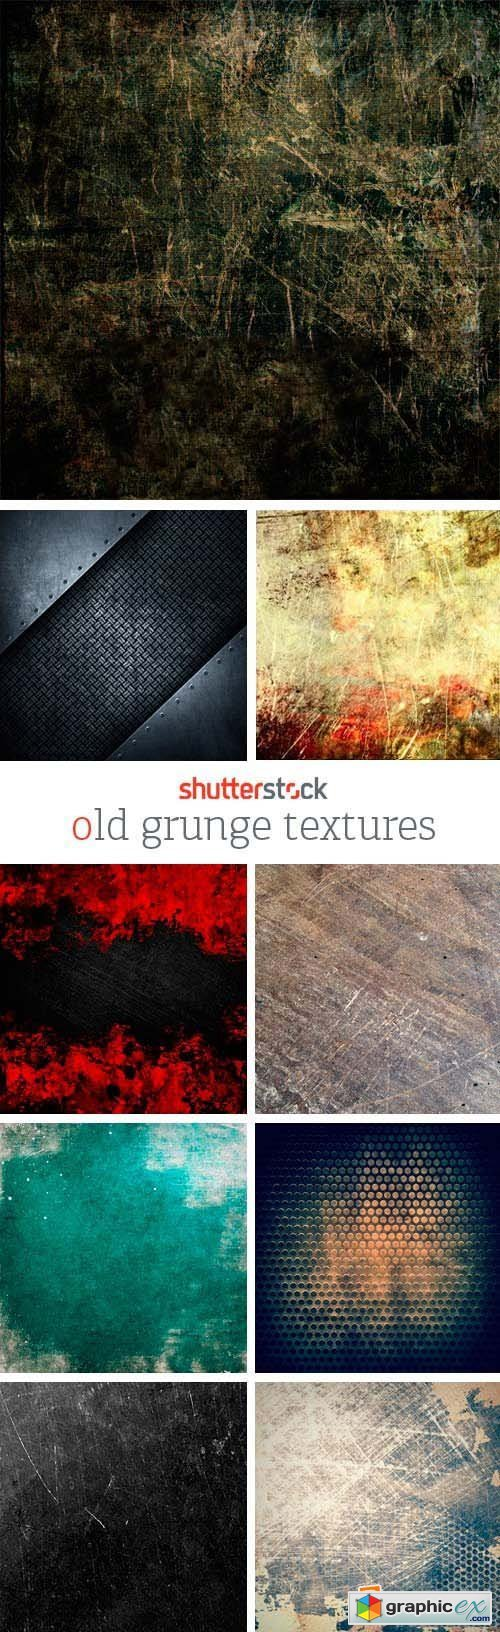 Amazing SS - Old Grunge Textures, 25xJPGs